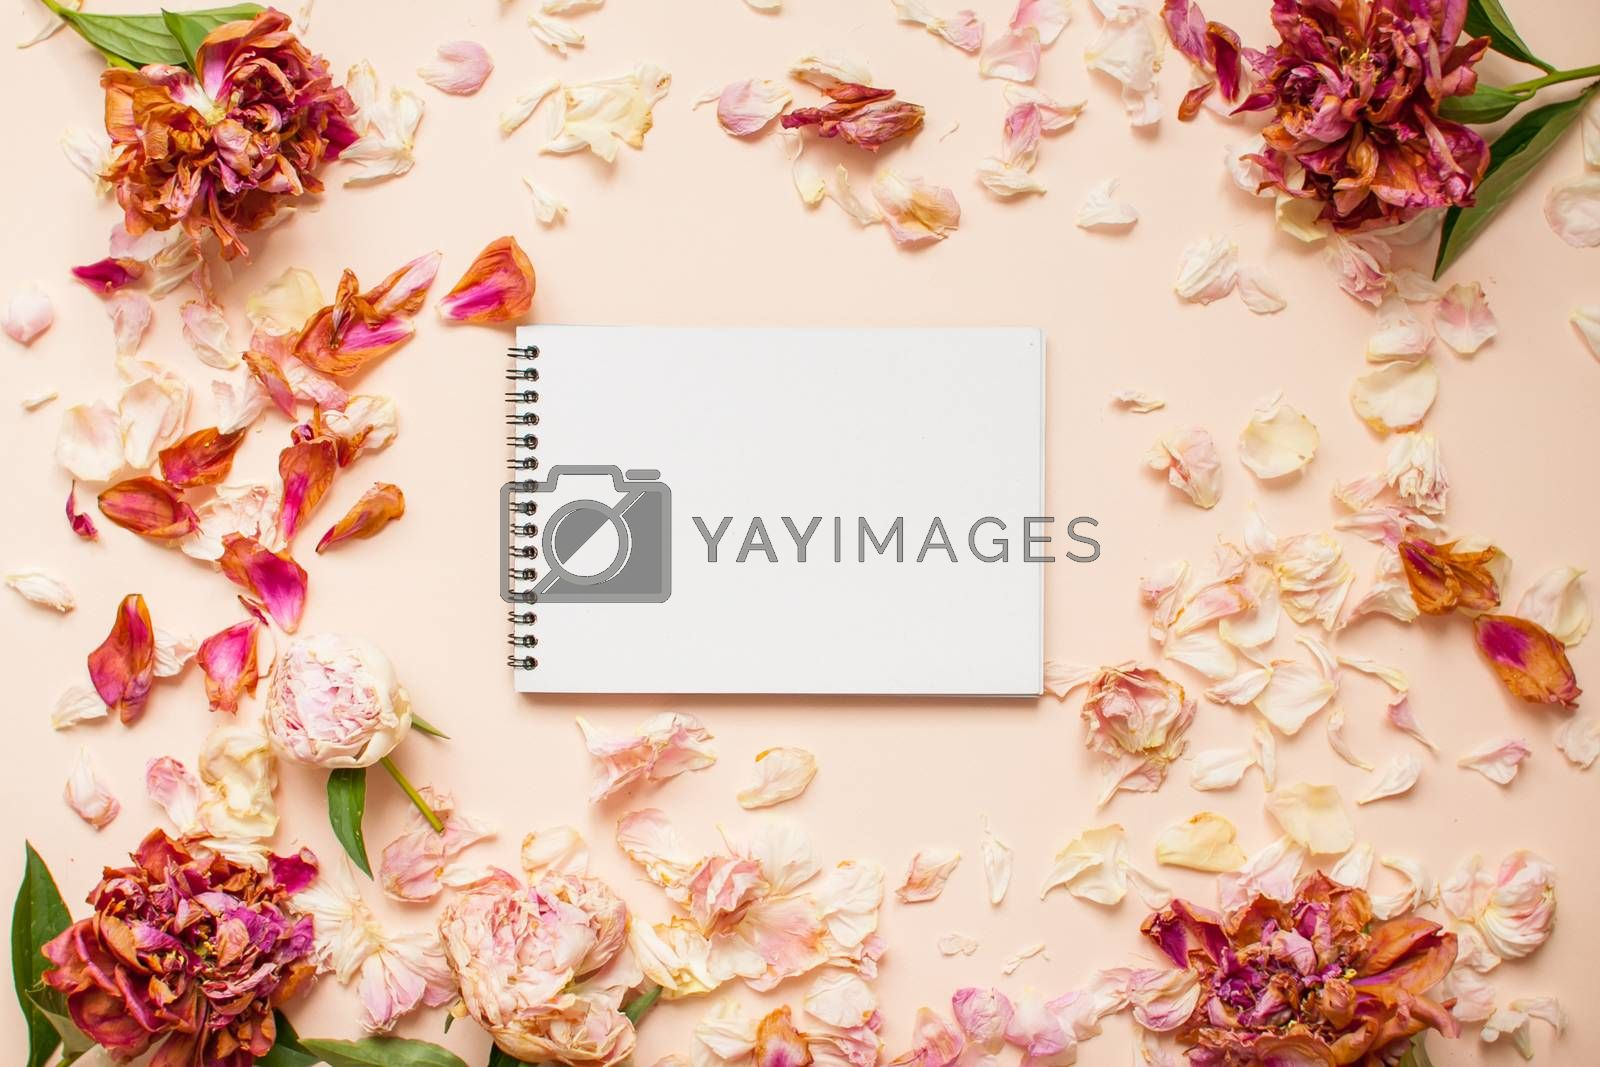 Top view: frame of dried pink peonies and petals with white paper in the center